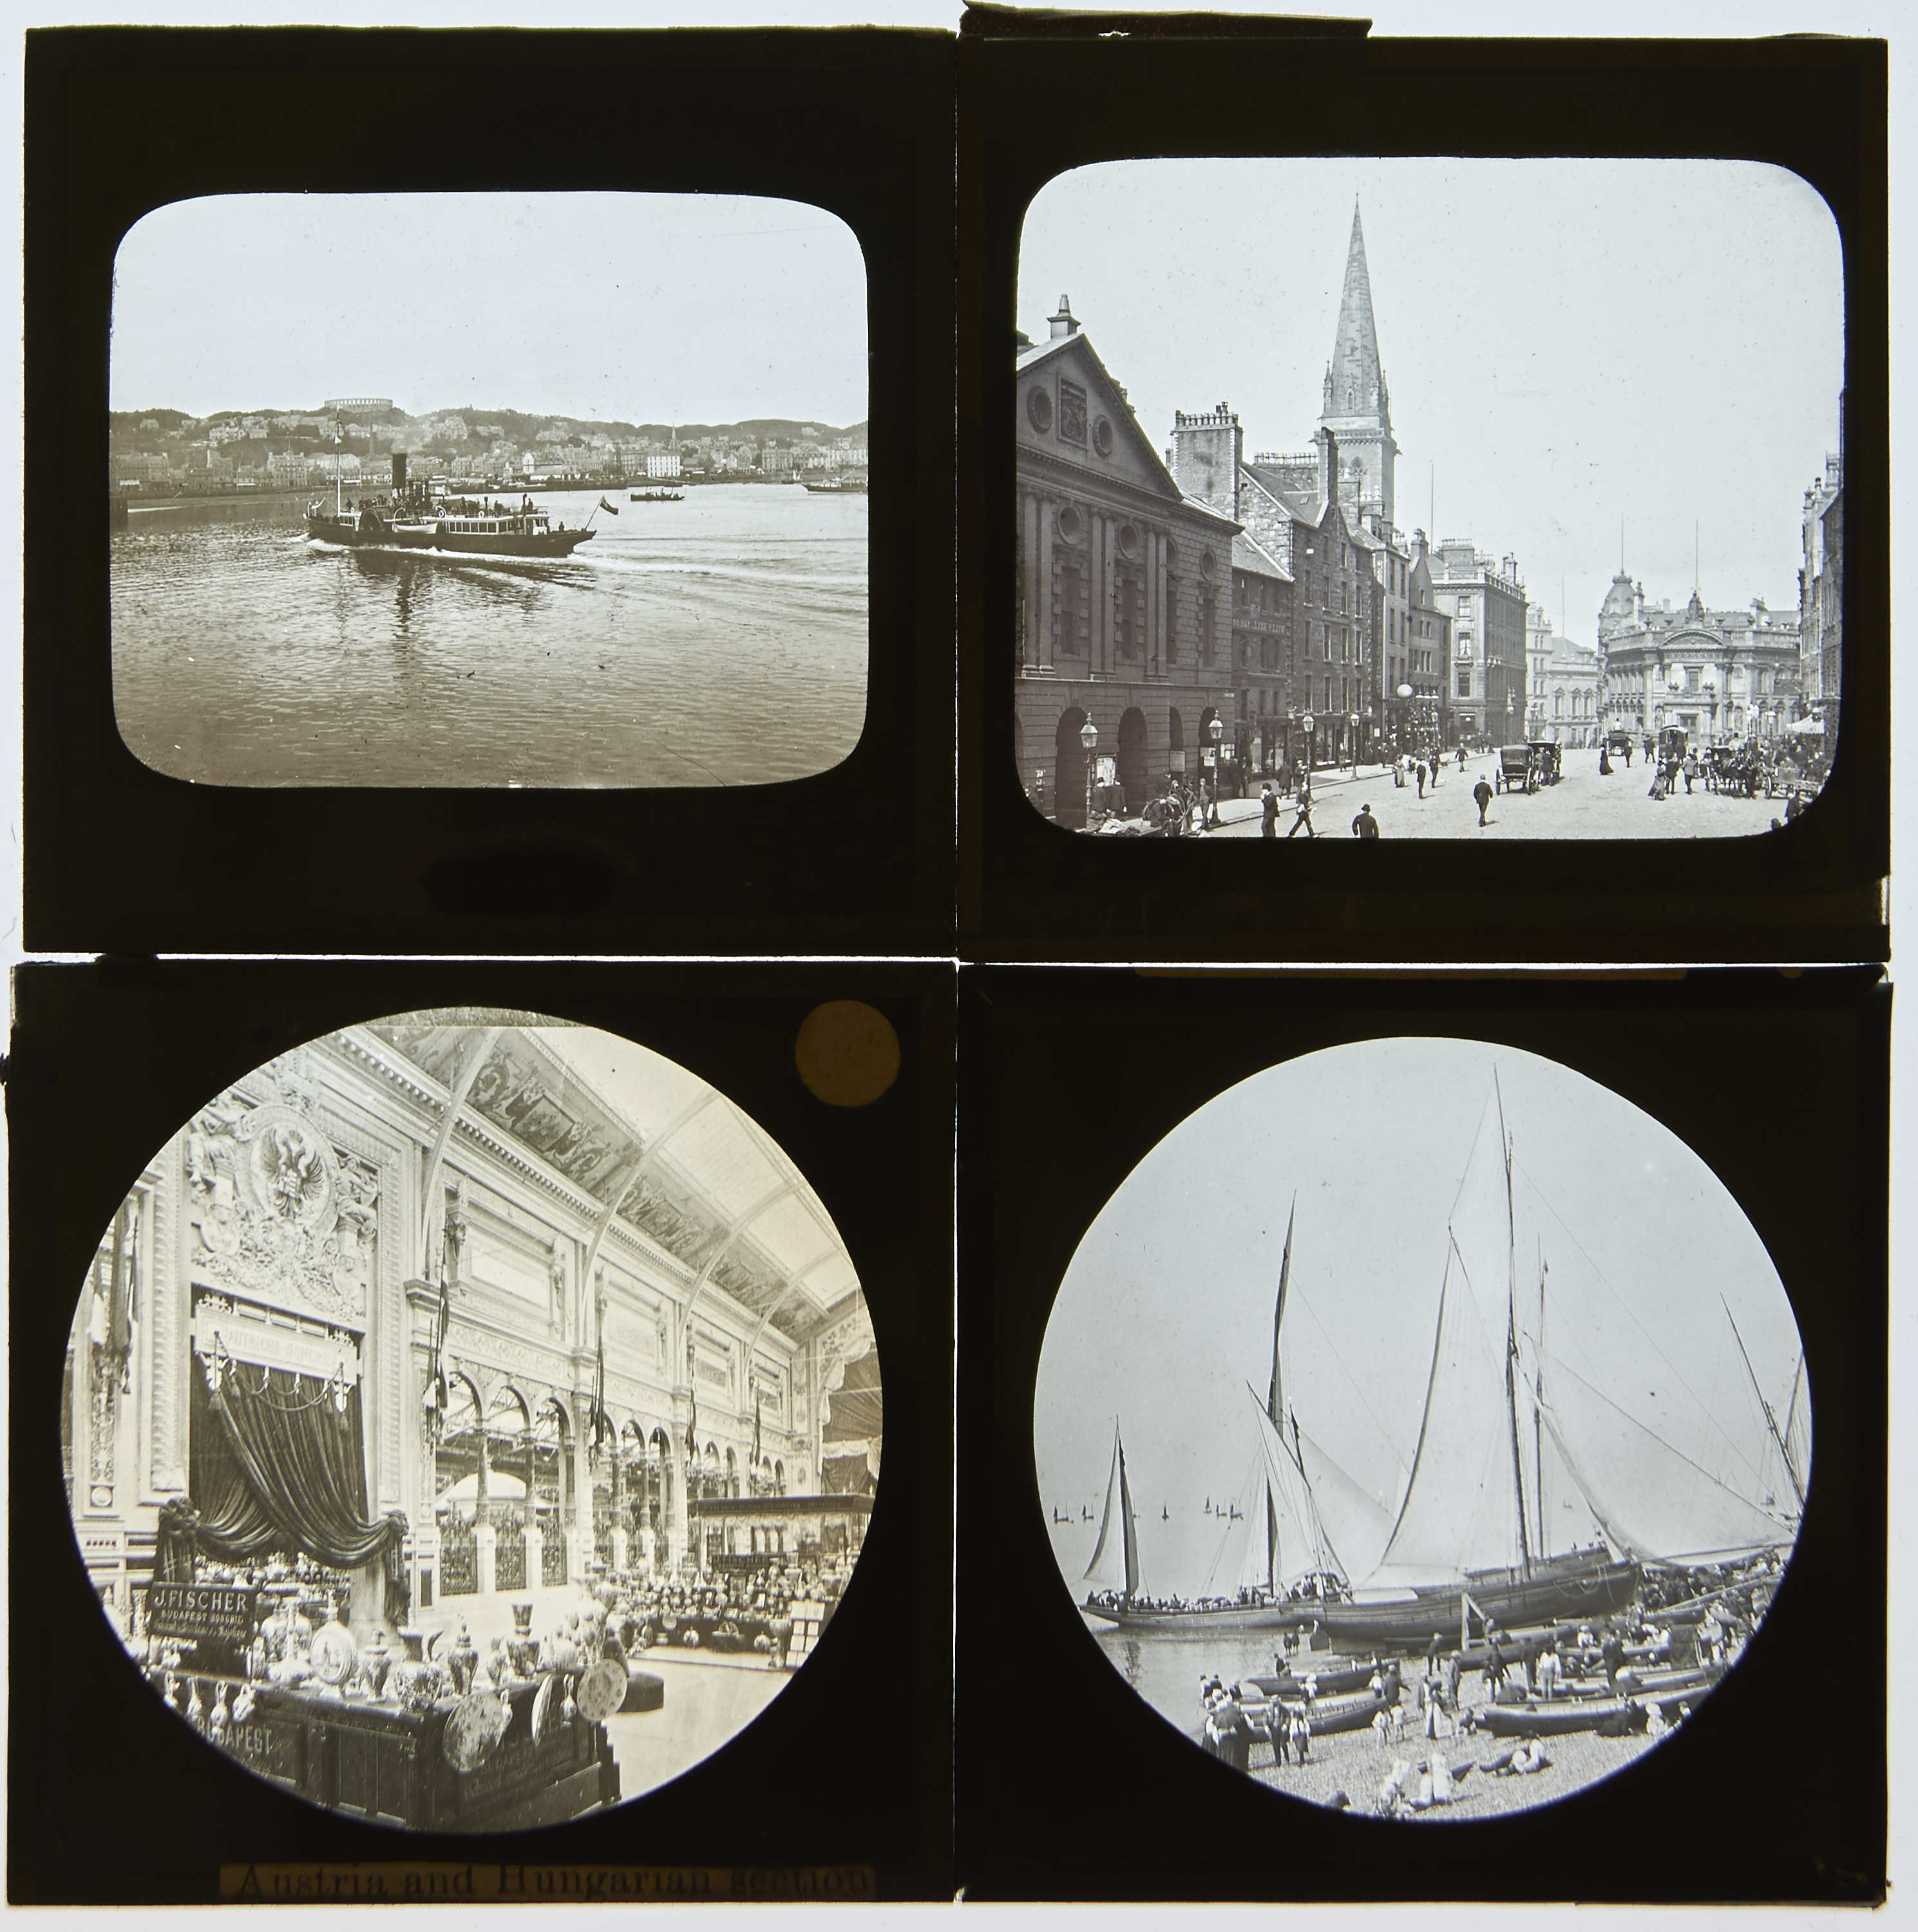 """TWO DEAL BOXES OF 3¼ X 3¼"""" MAGIC LANTERN SLIDES, LATE 19TH / EARLY 20TH C, VARIOUS SUBJECTS, TO - Image 2 of 2"""